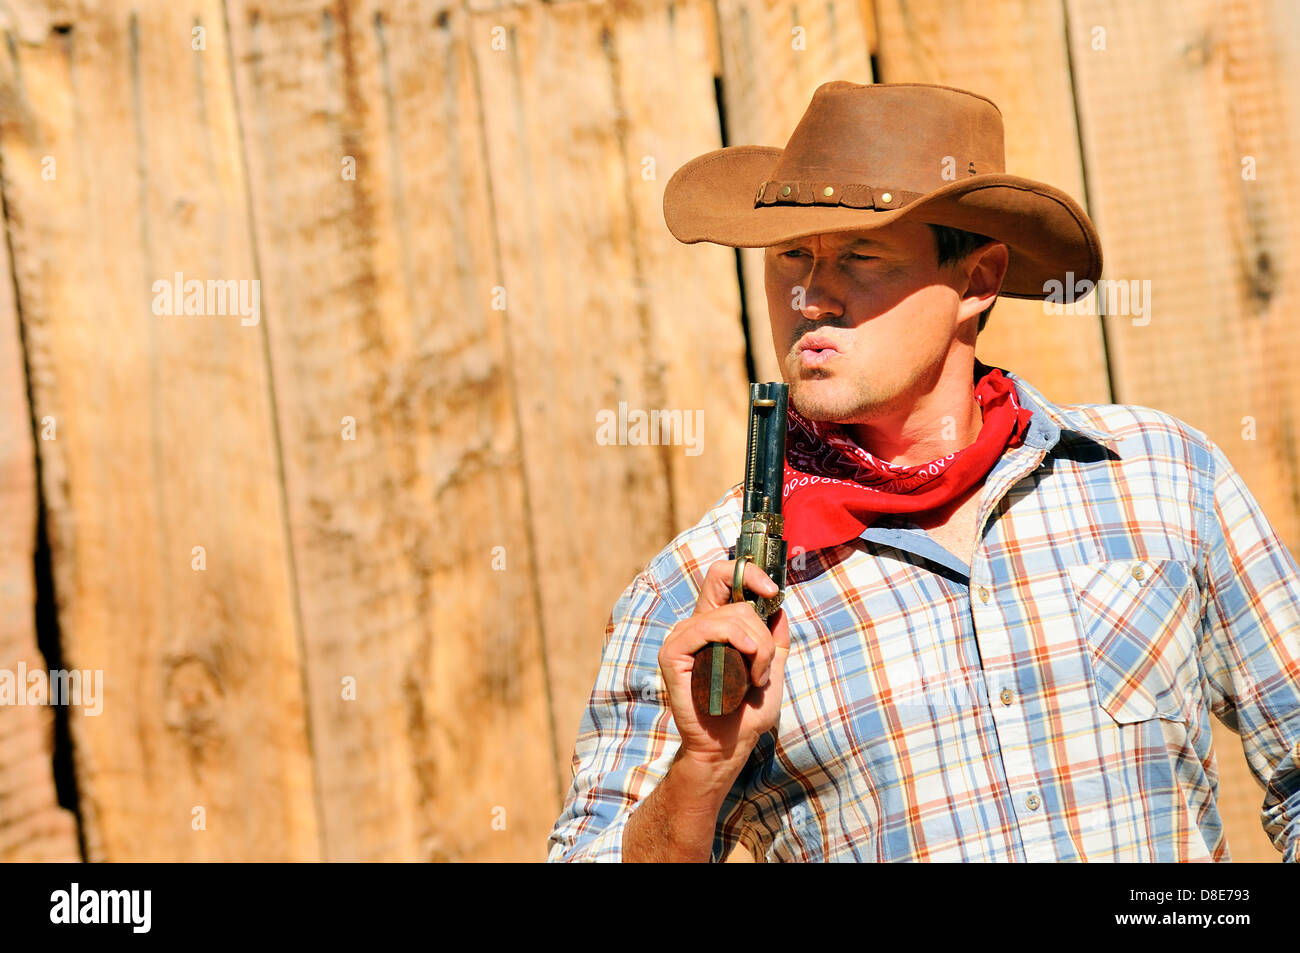 SOUTHWEST - A cowboy takes time to rest and reflect. - Stock Image